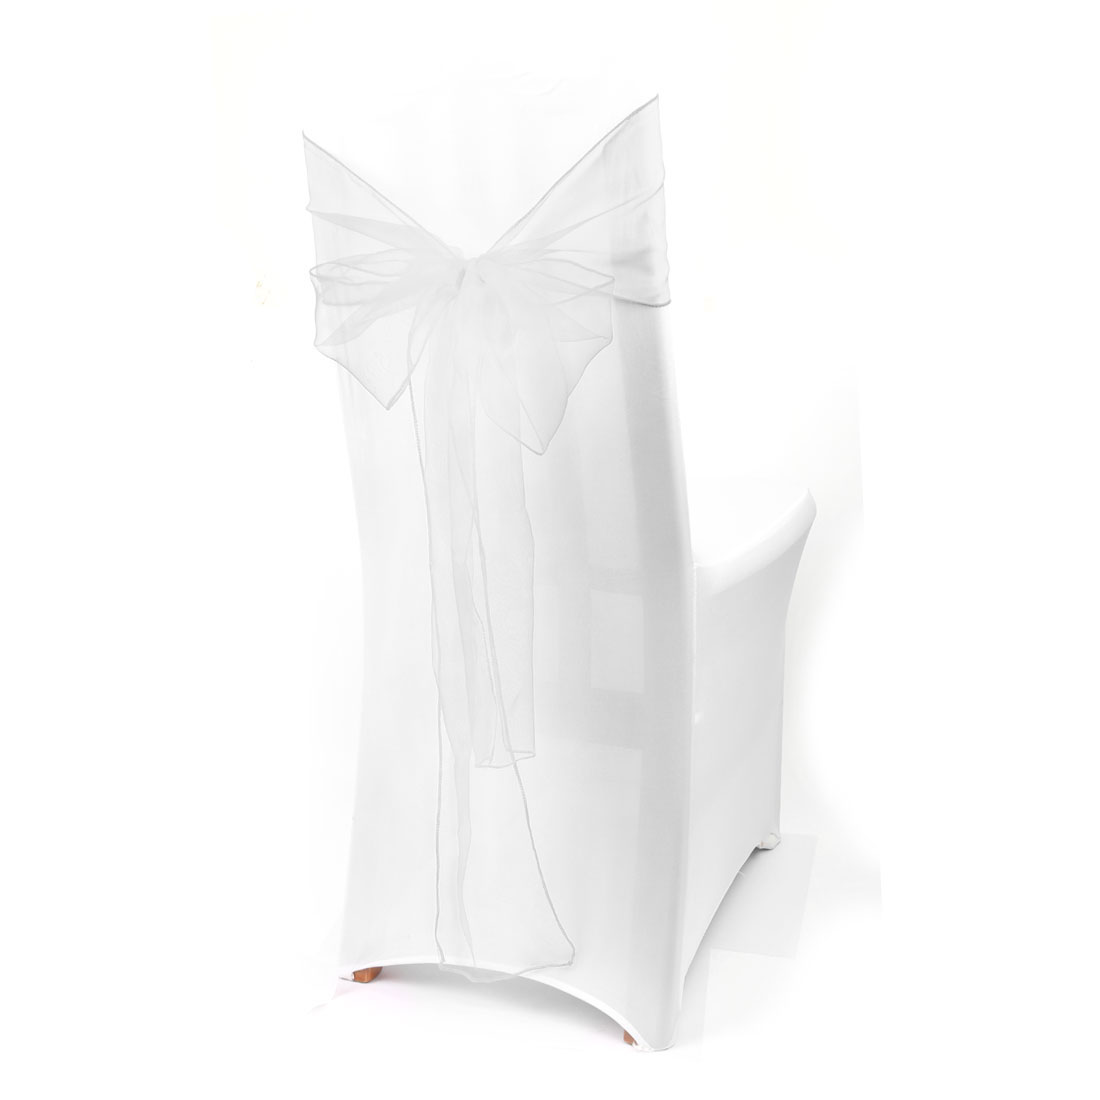 paper chair covers for weddings bathroom stools and chairs organza cover sashes bow wedding party banquet decor set of 10 walmart com